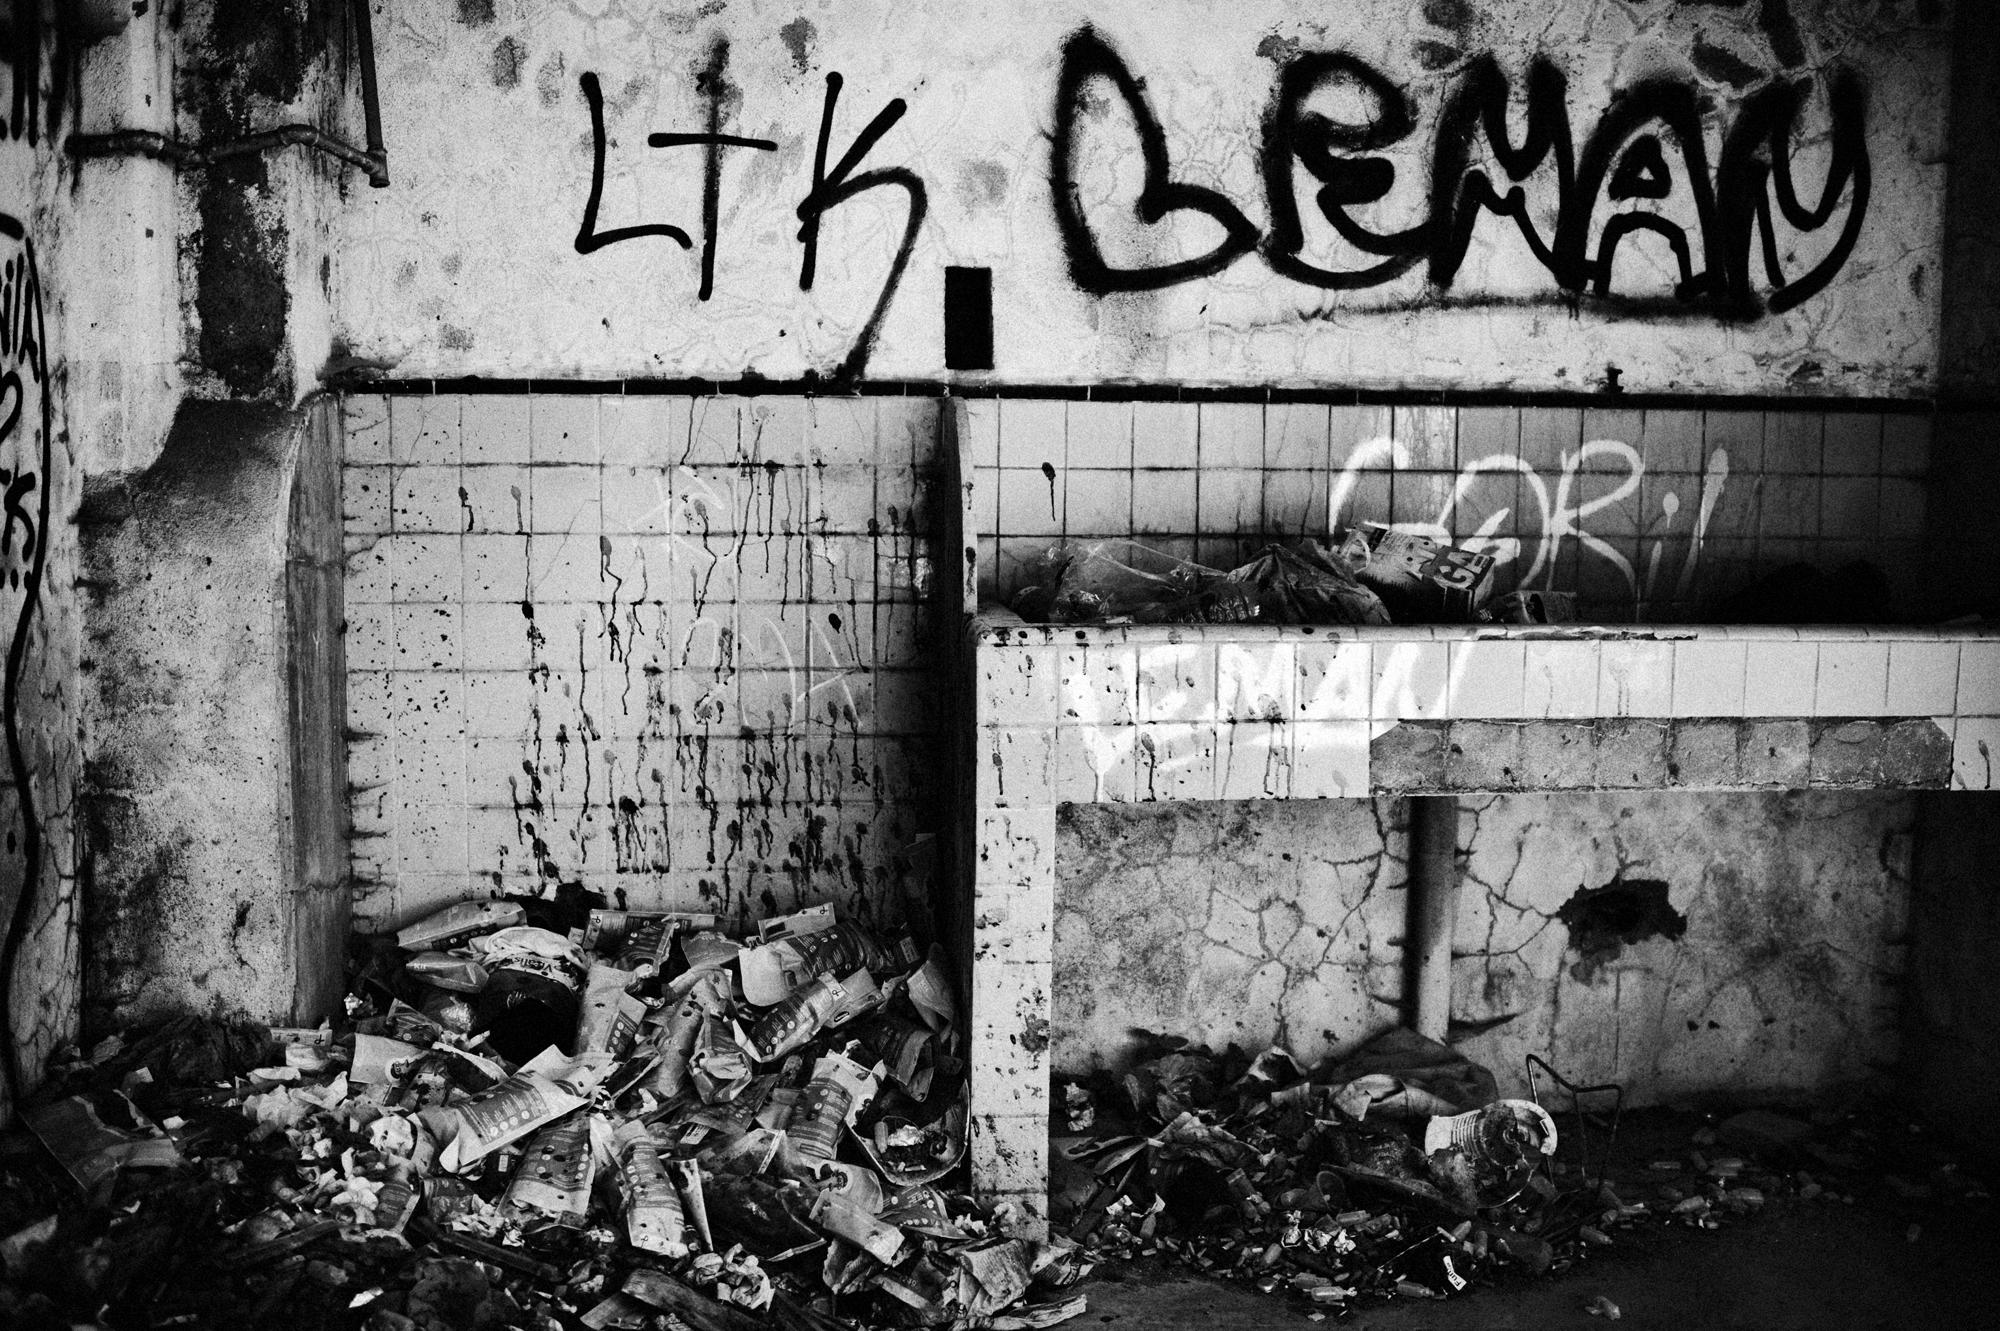 Beifica, Lisbon, Portugal. July 2011. An abandoned bulding where heroin addicts live and shoot.